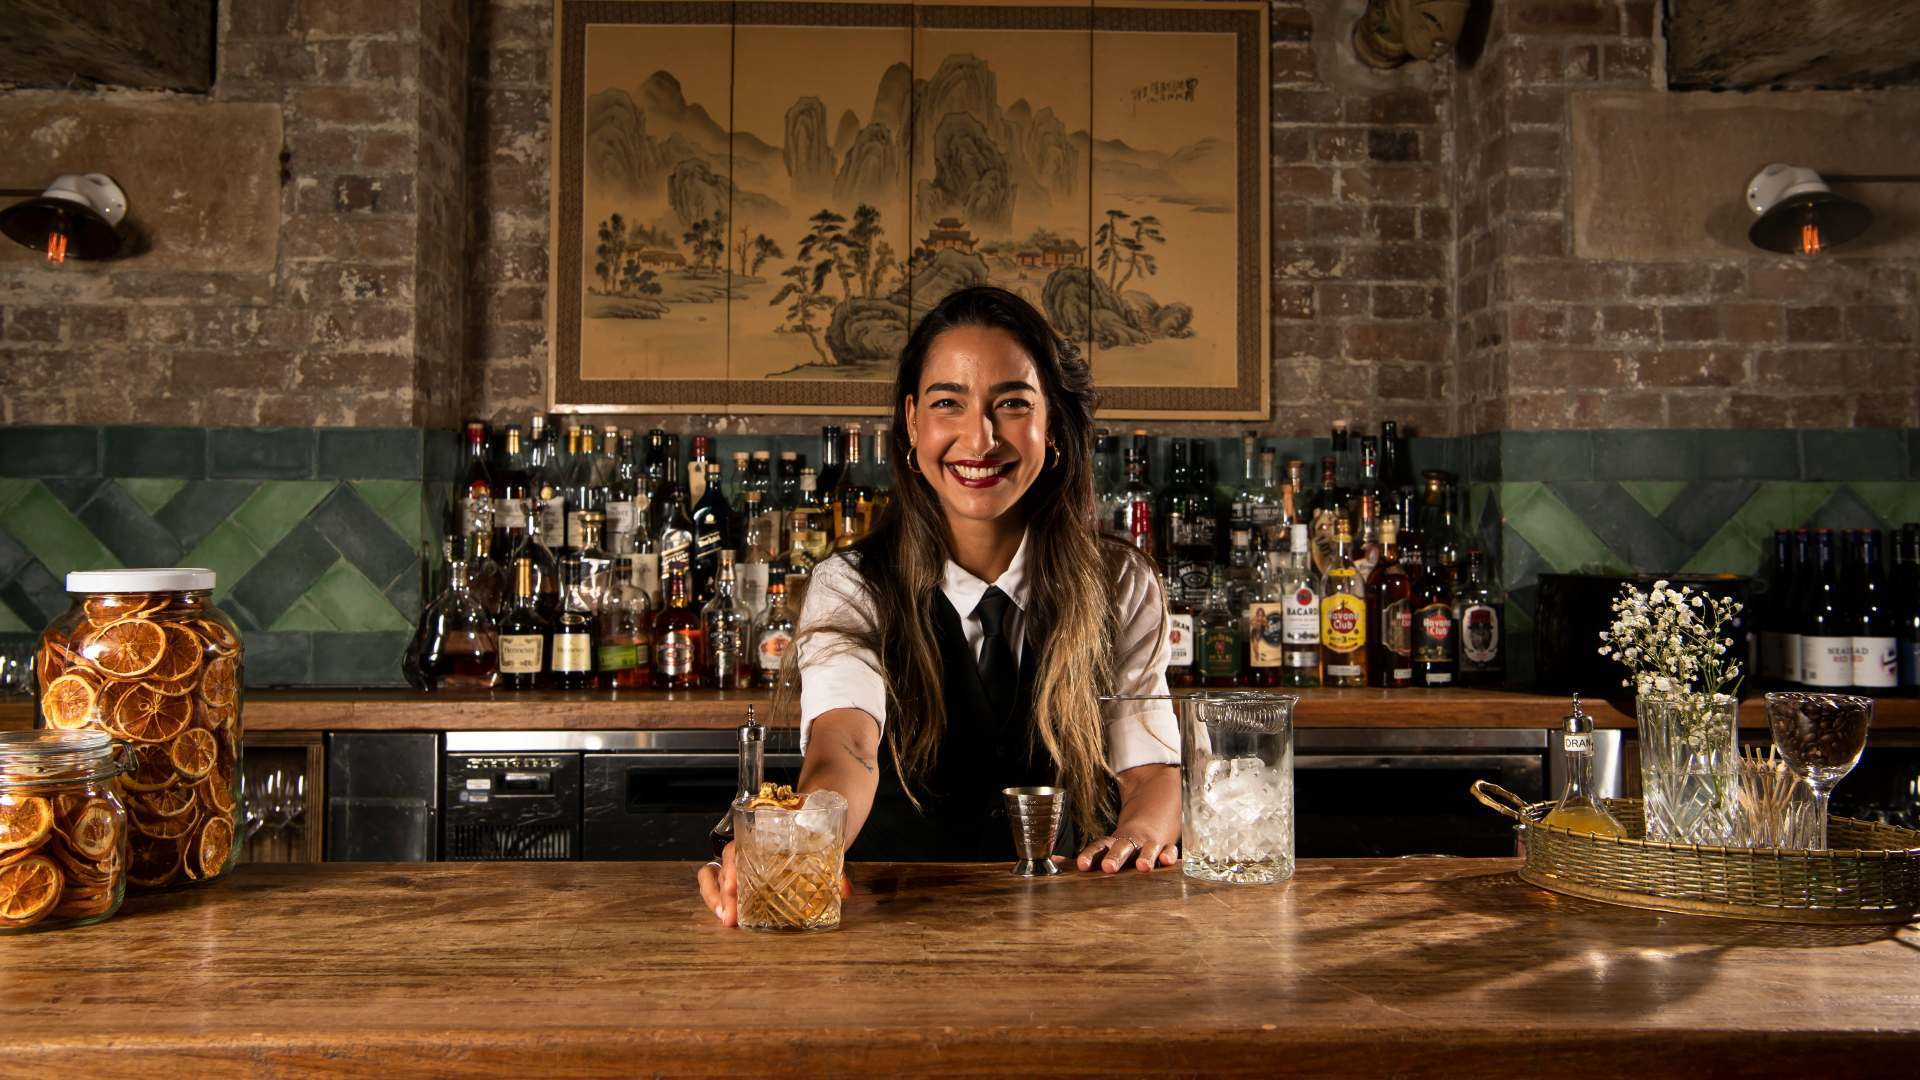 How to Make a Yum Cha Old-Fashioned with Natasha Capol from Mr Wong